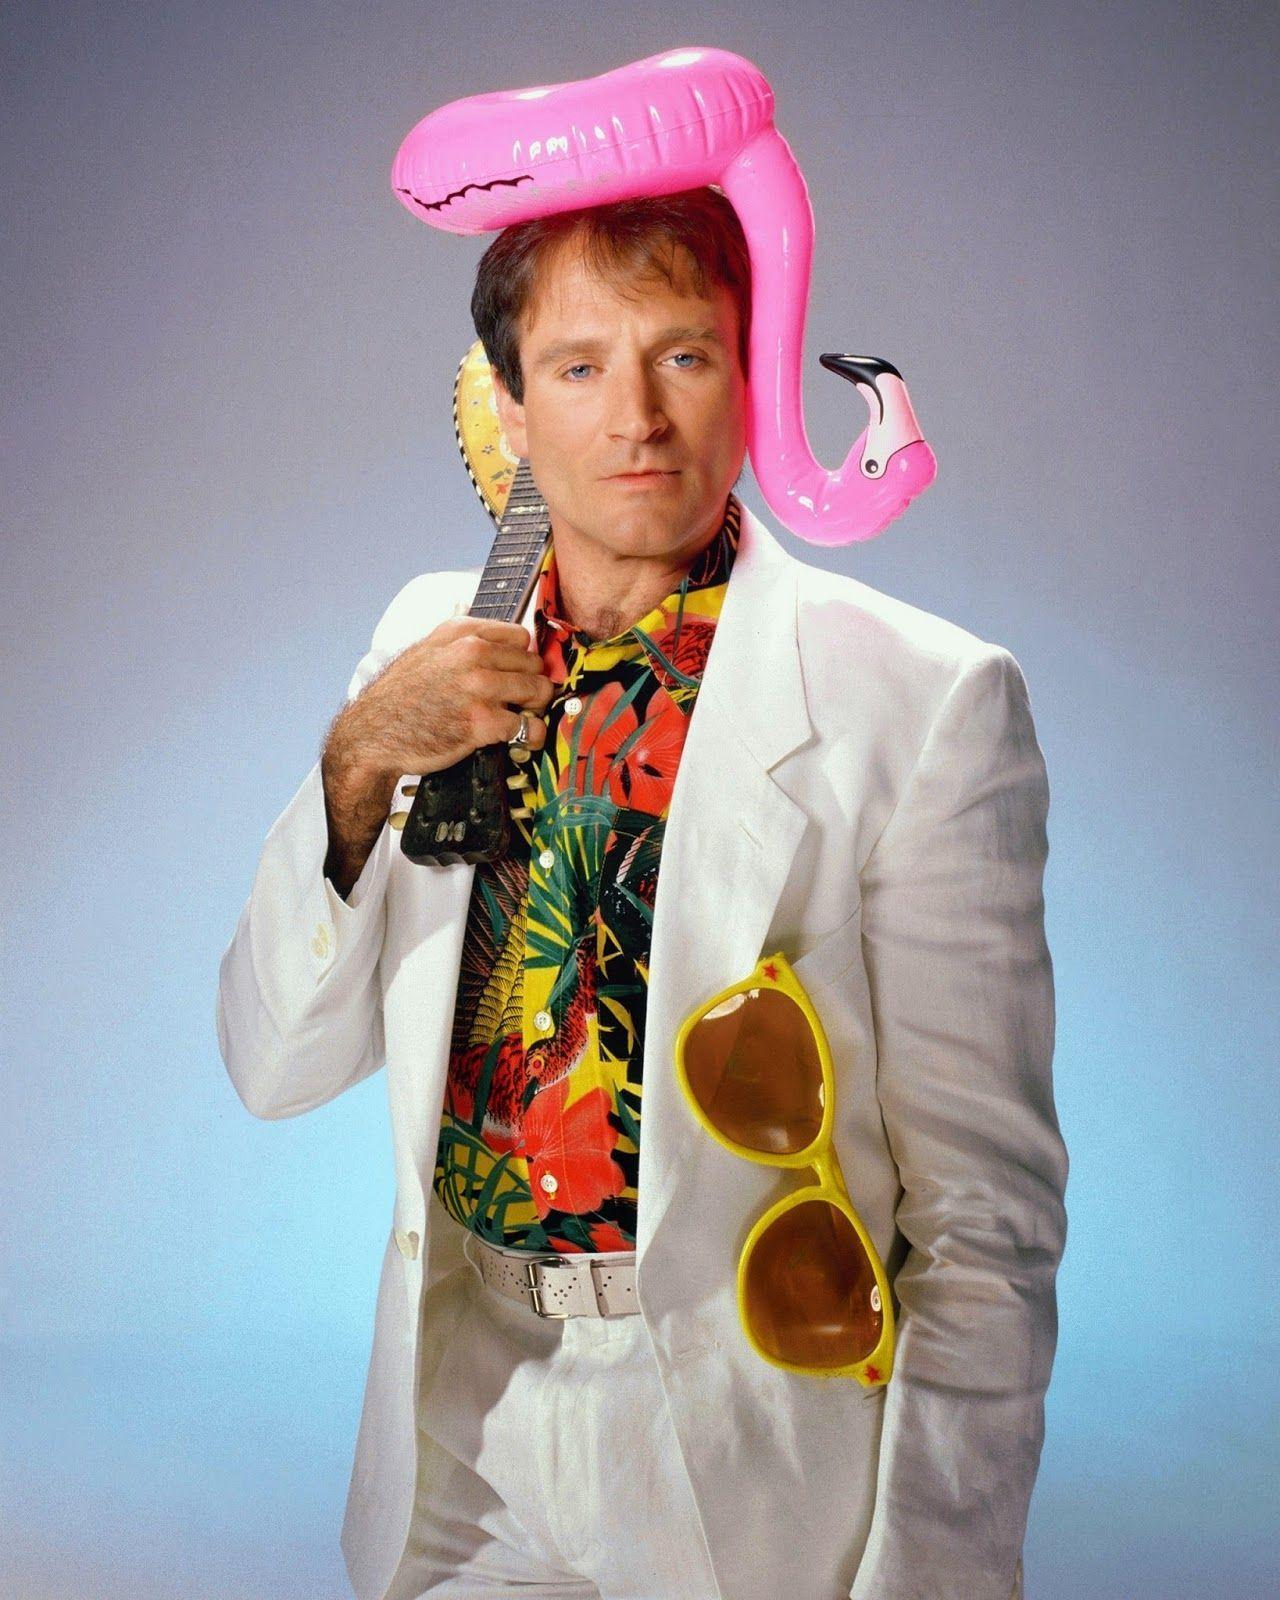 robin williams cocaine - cell phone wallpapers